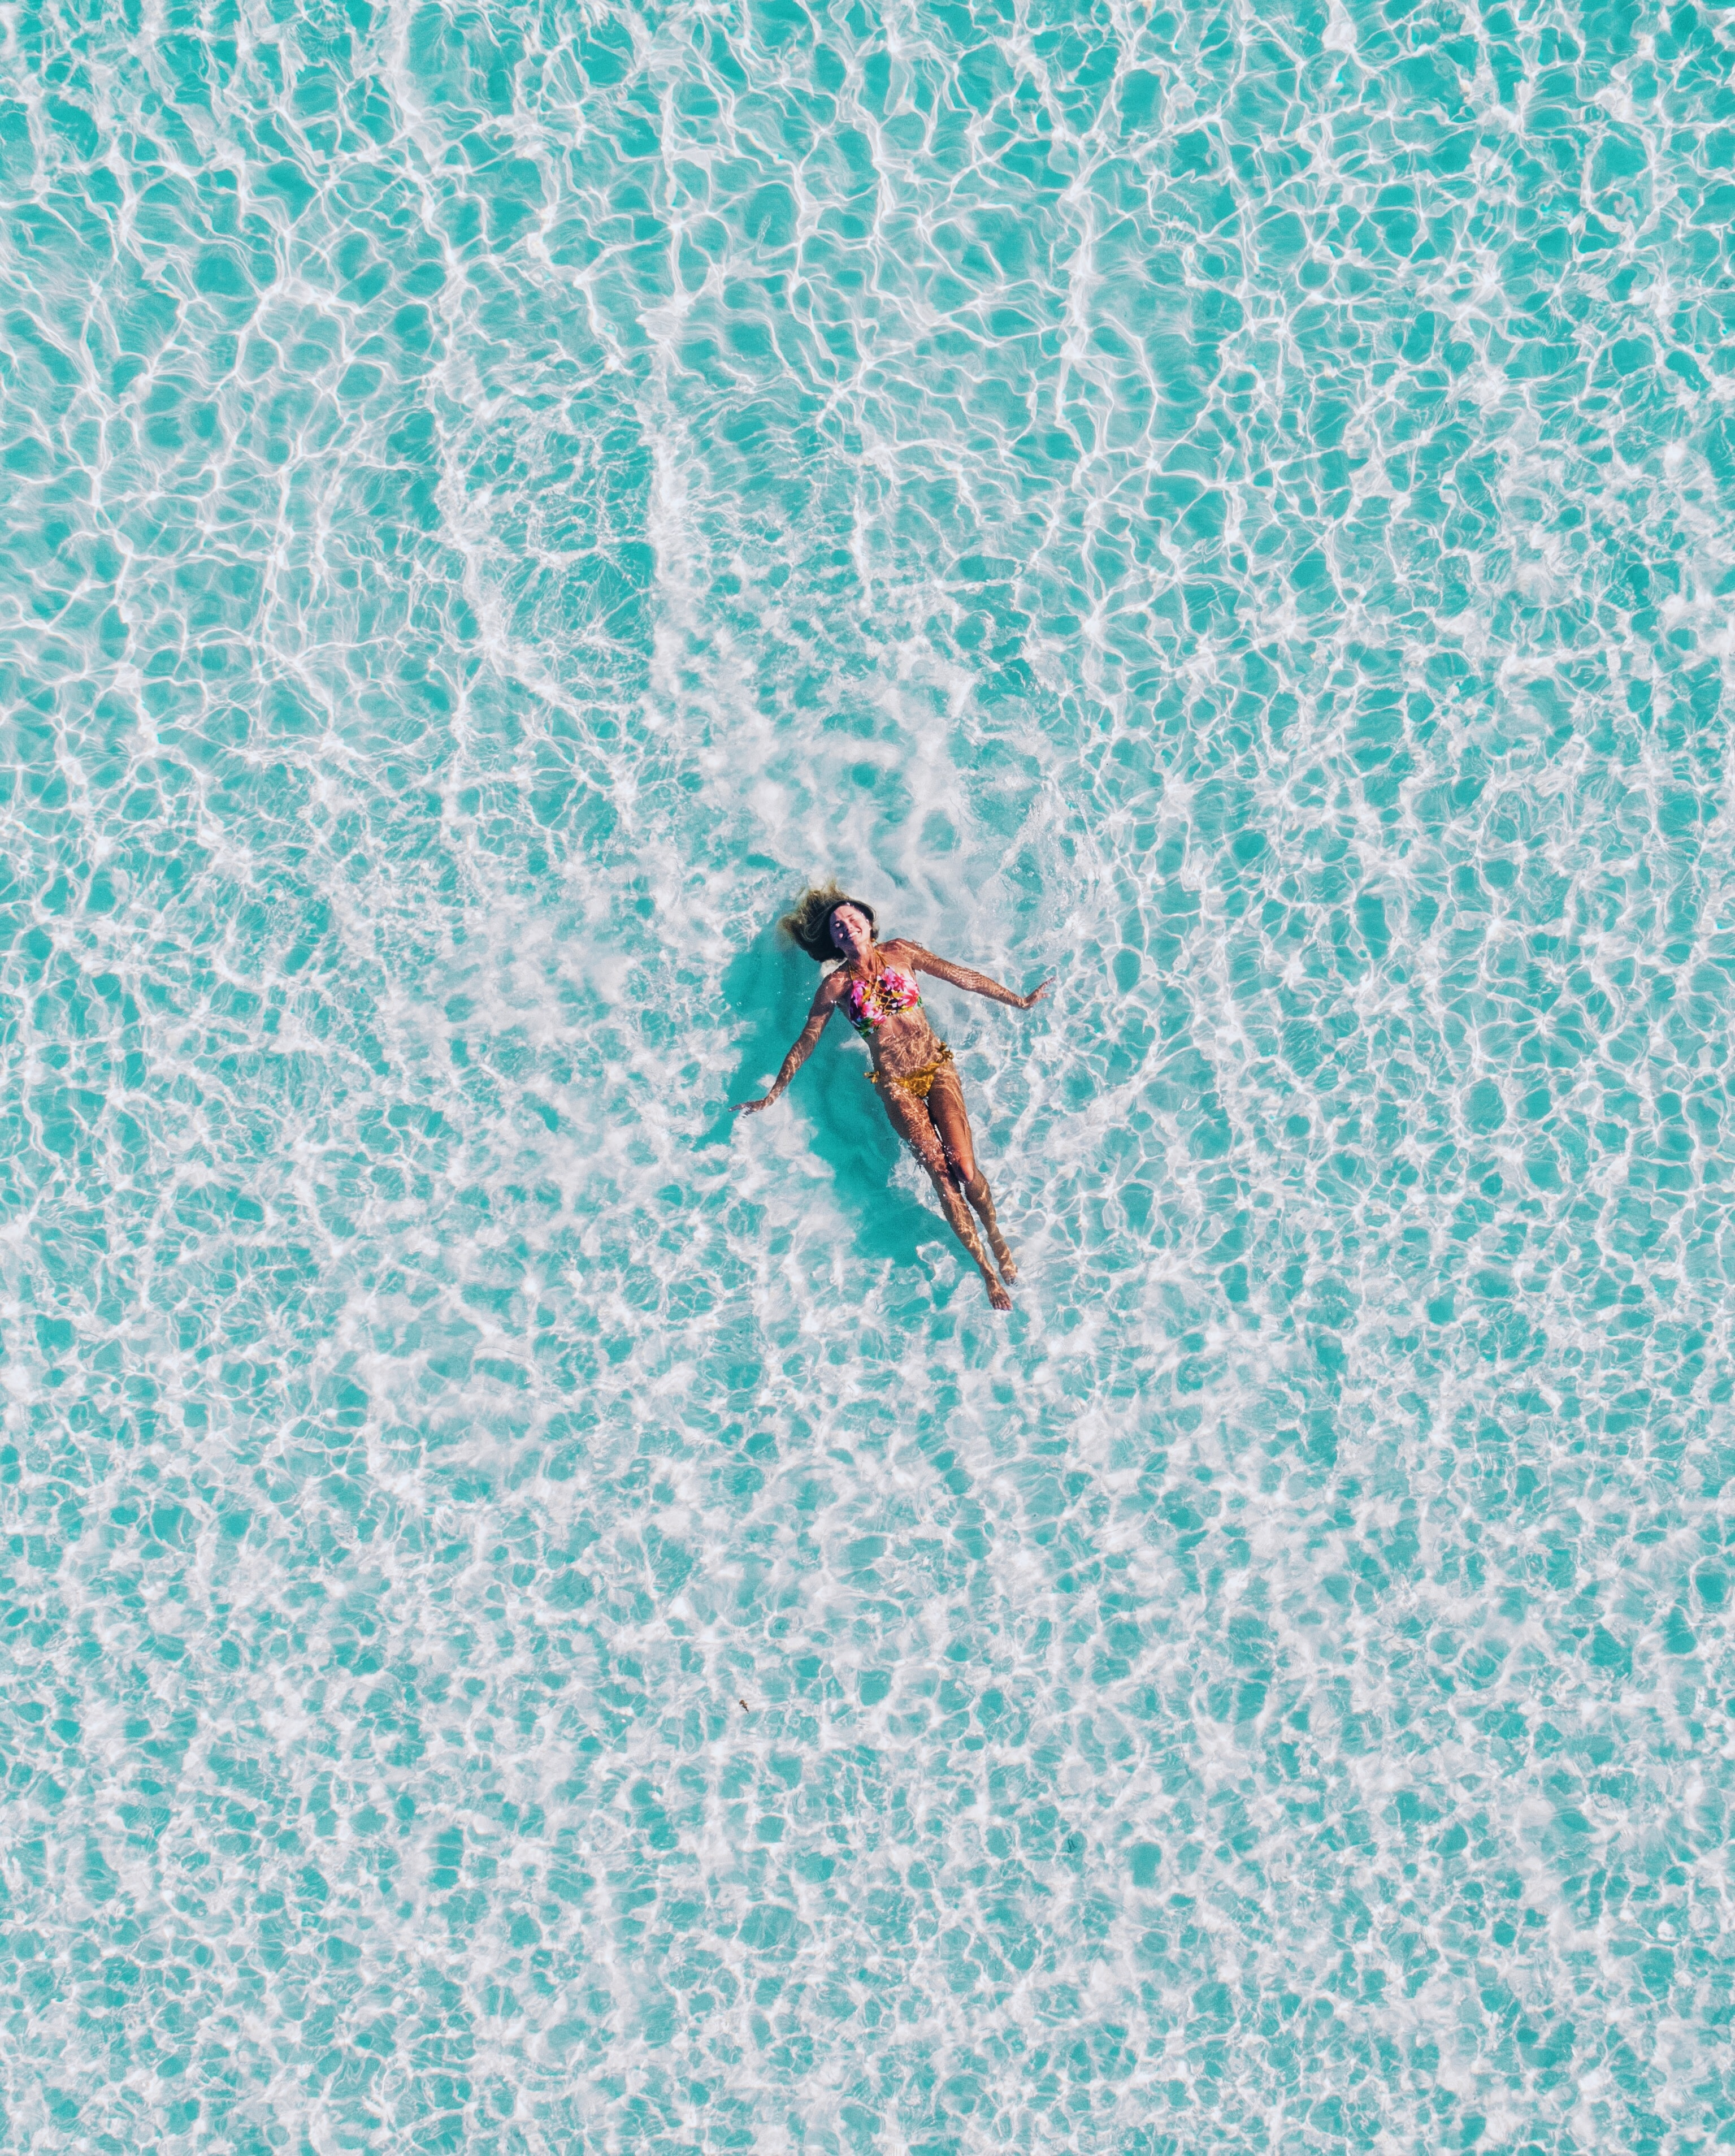 Free Unsplash photo from Ishan @seefromthesky